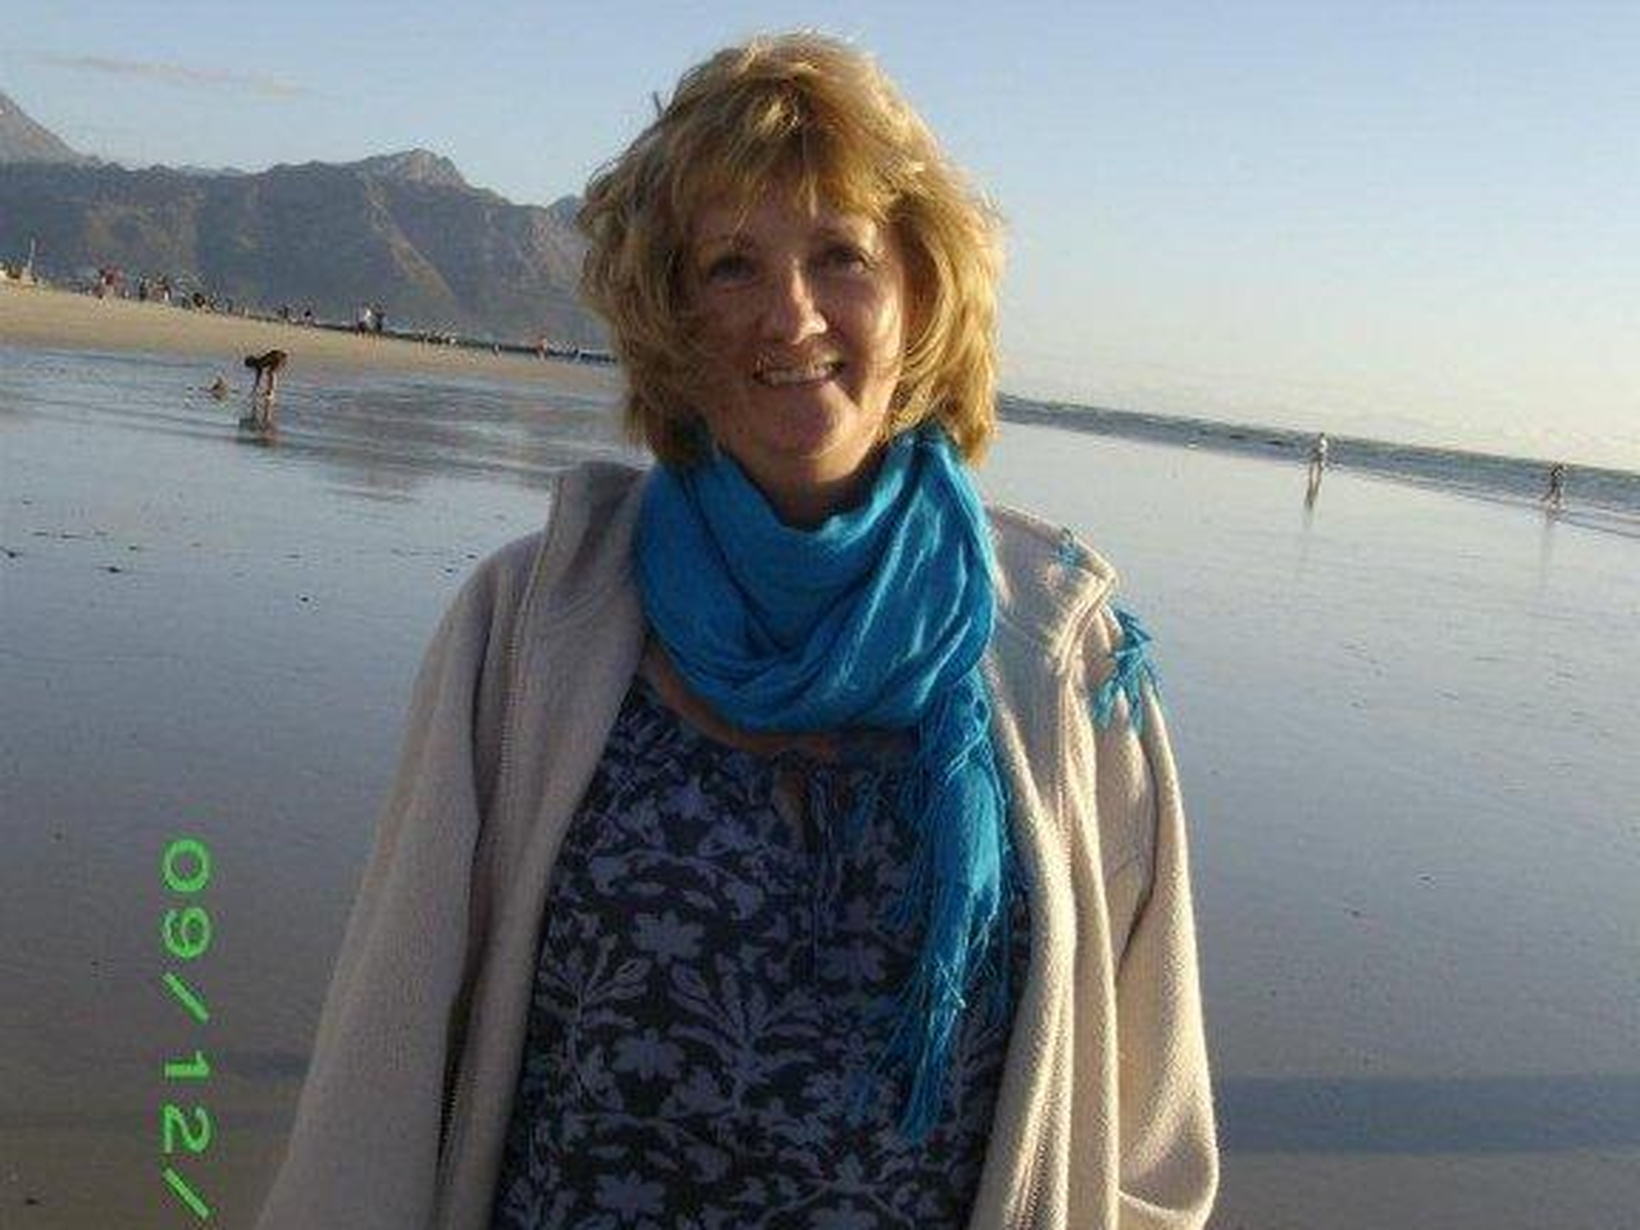 Rachel from Cape Town, South Africa